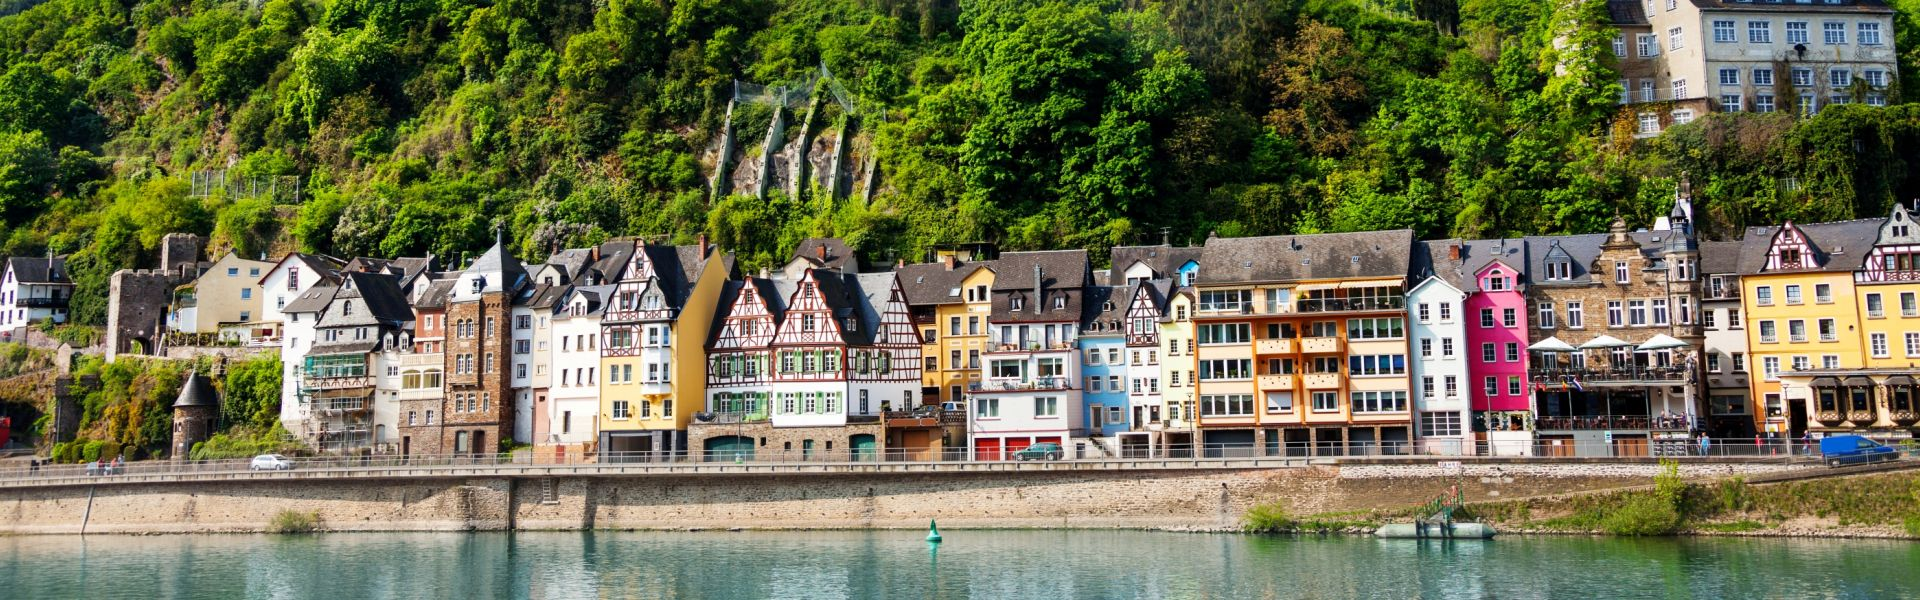 Cochem, on the bank of the Moselle River, Germany